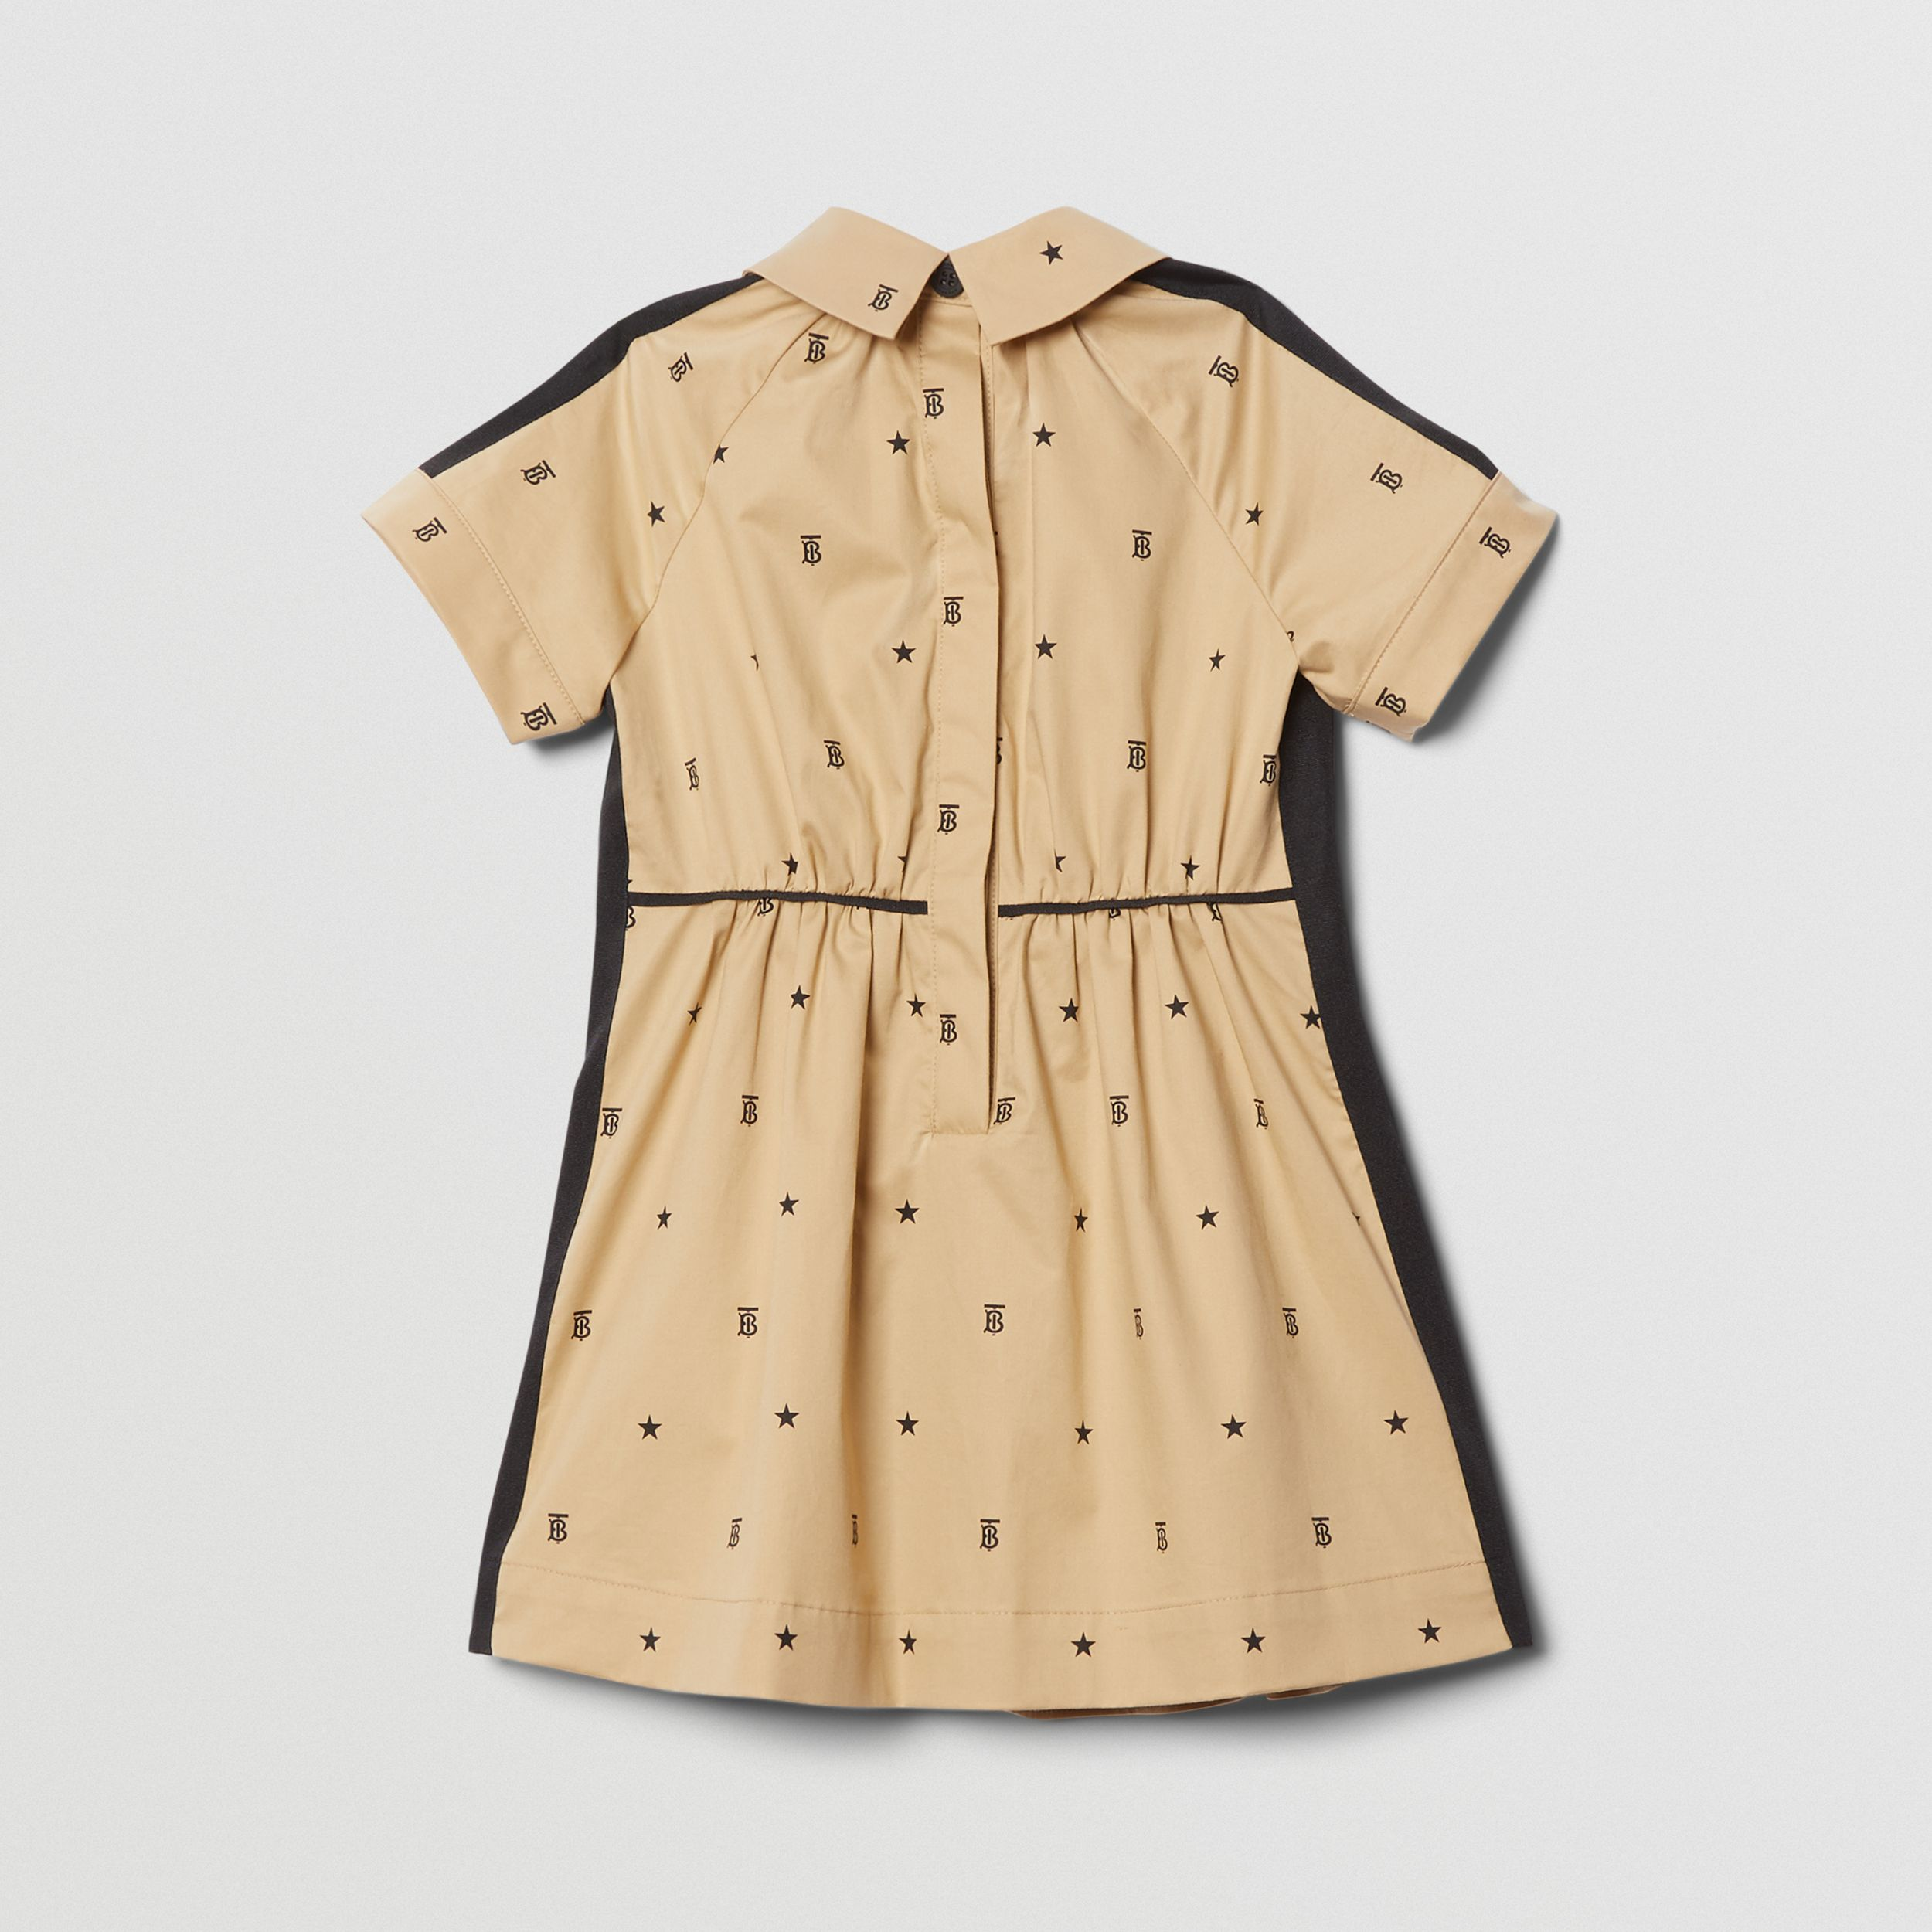 Star and Monogram Motif Stretch Cotton Dress in Sand - Children | Burberry - 4